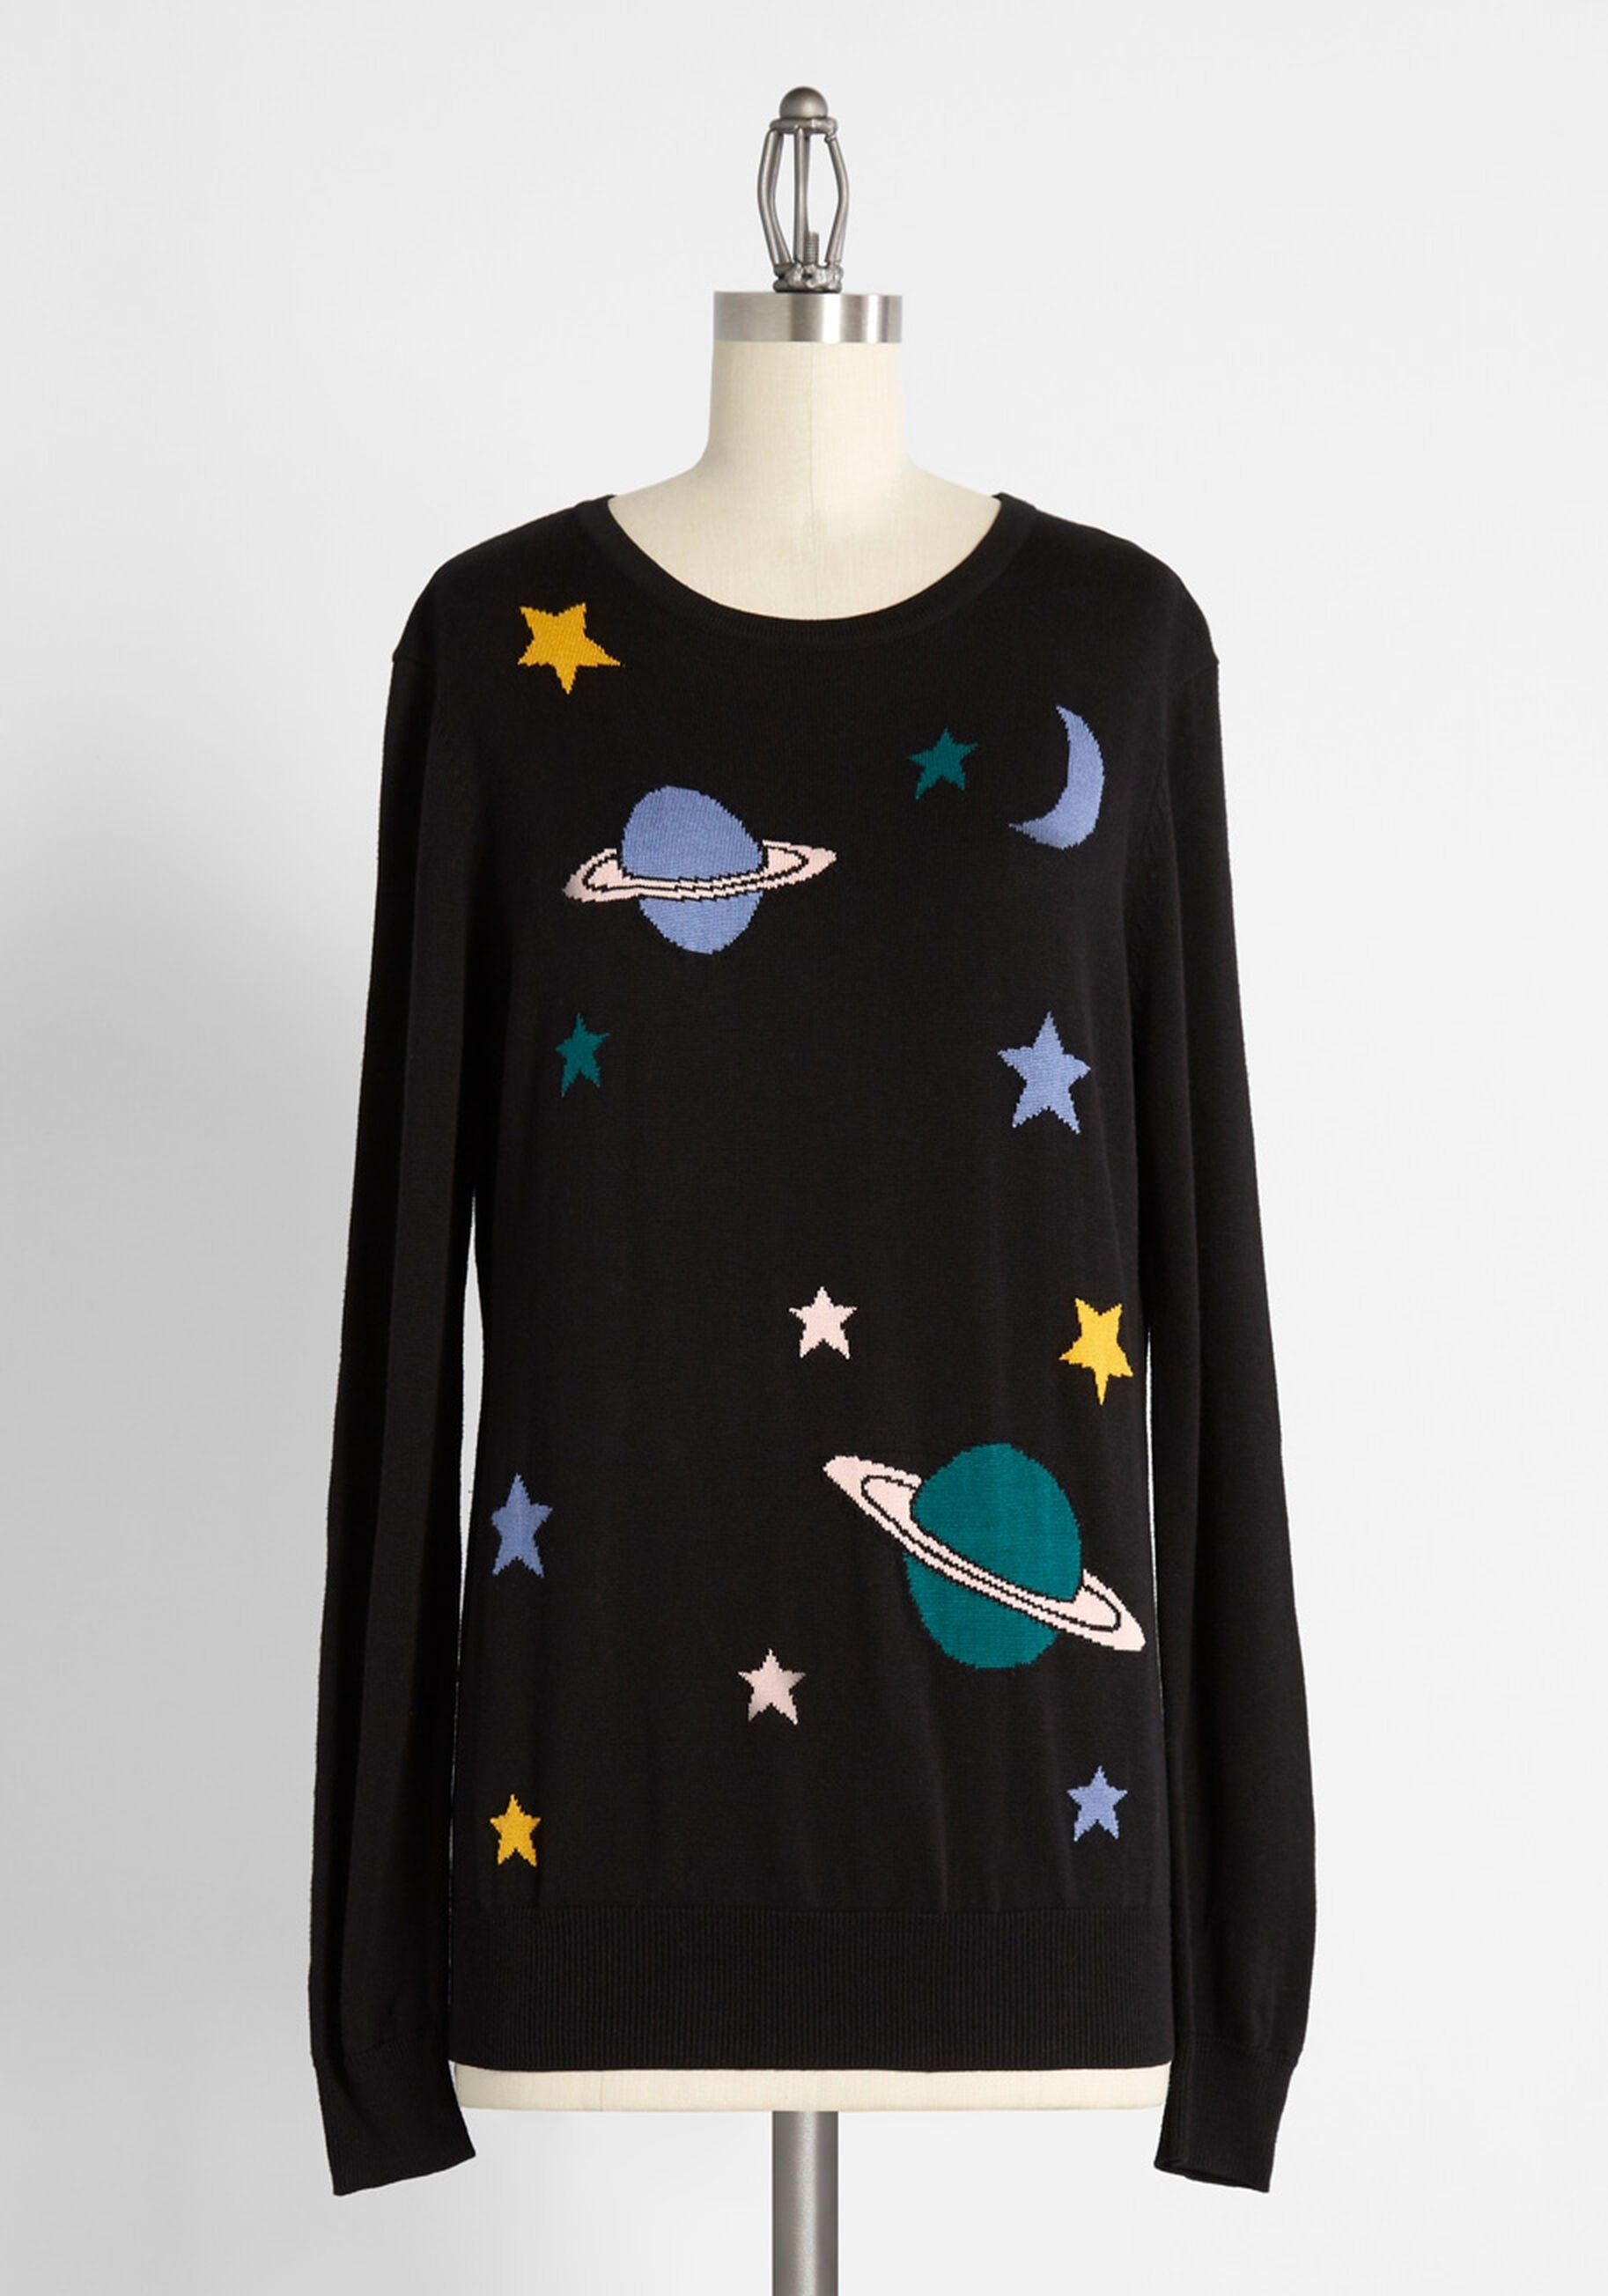 a black sweater with stars and saturn on it